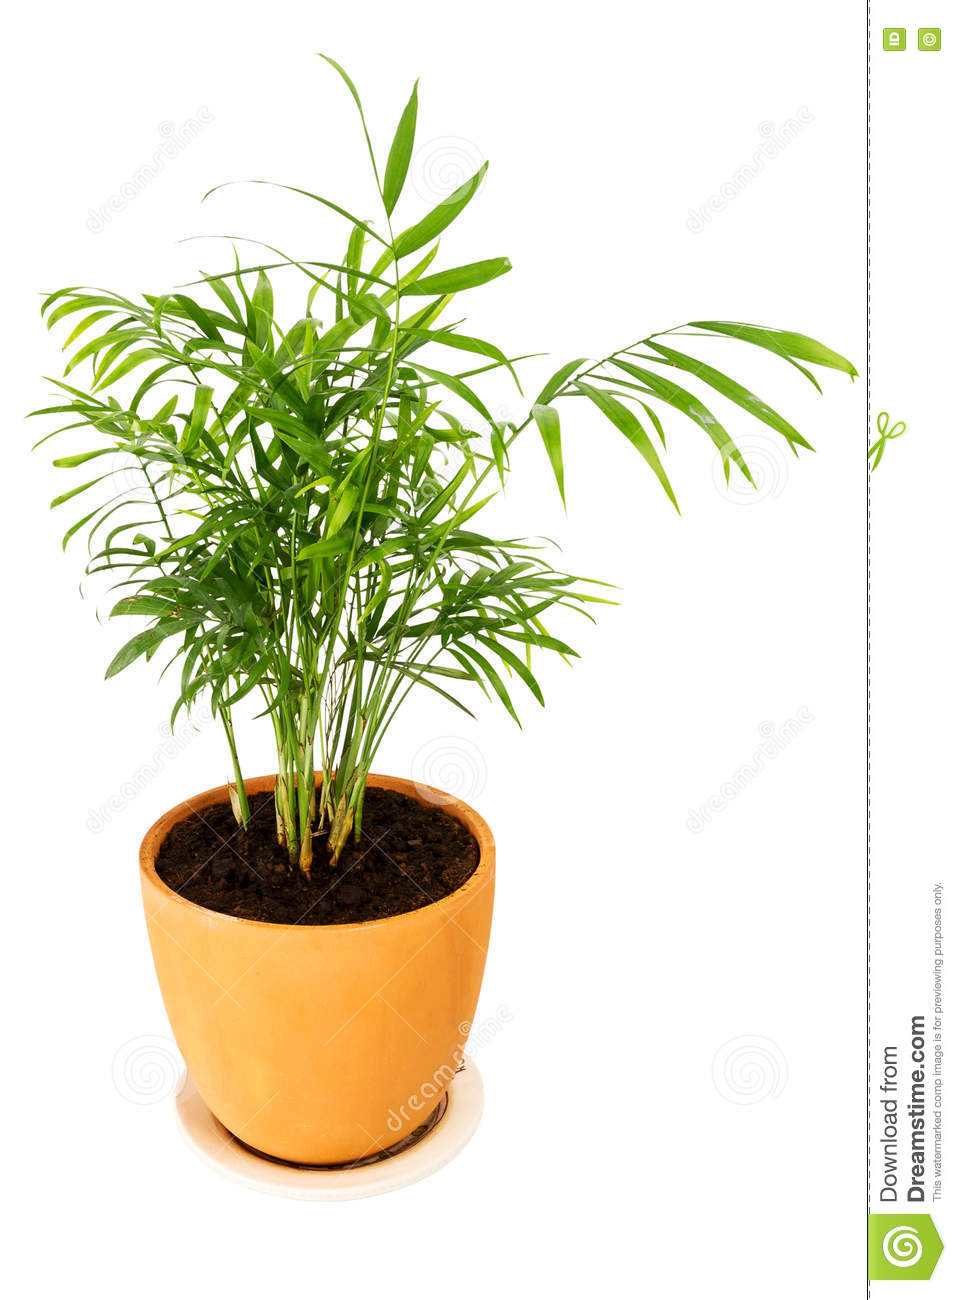 Chrysalidocarpus Lutescens Palm Tree Stock Image - Image ...